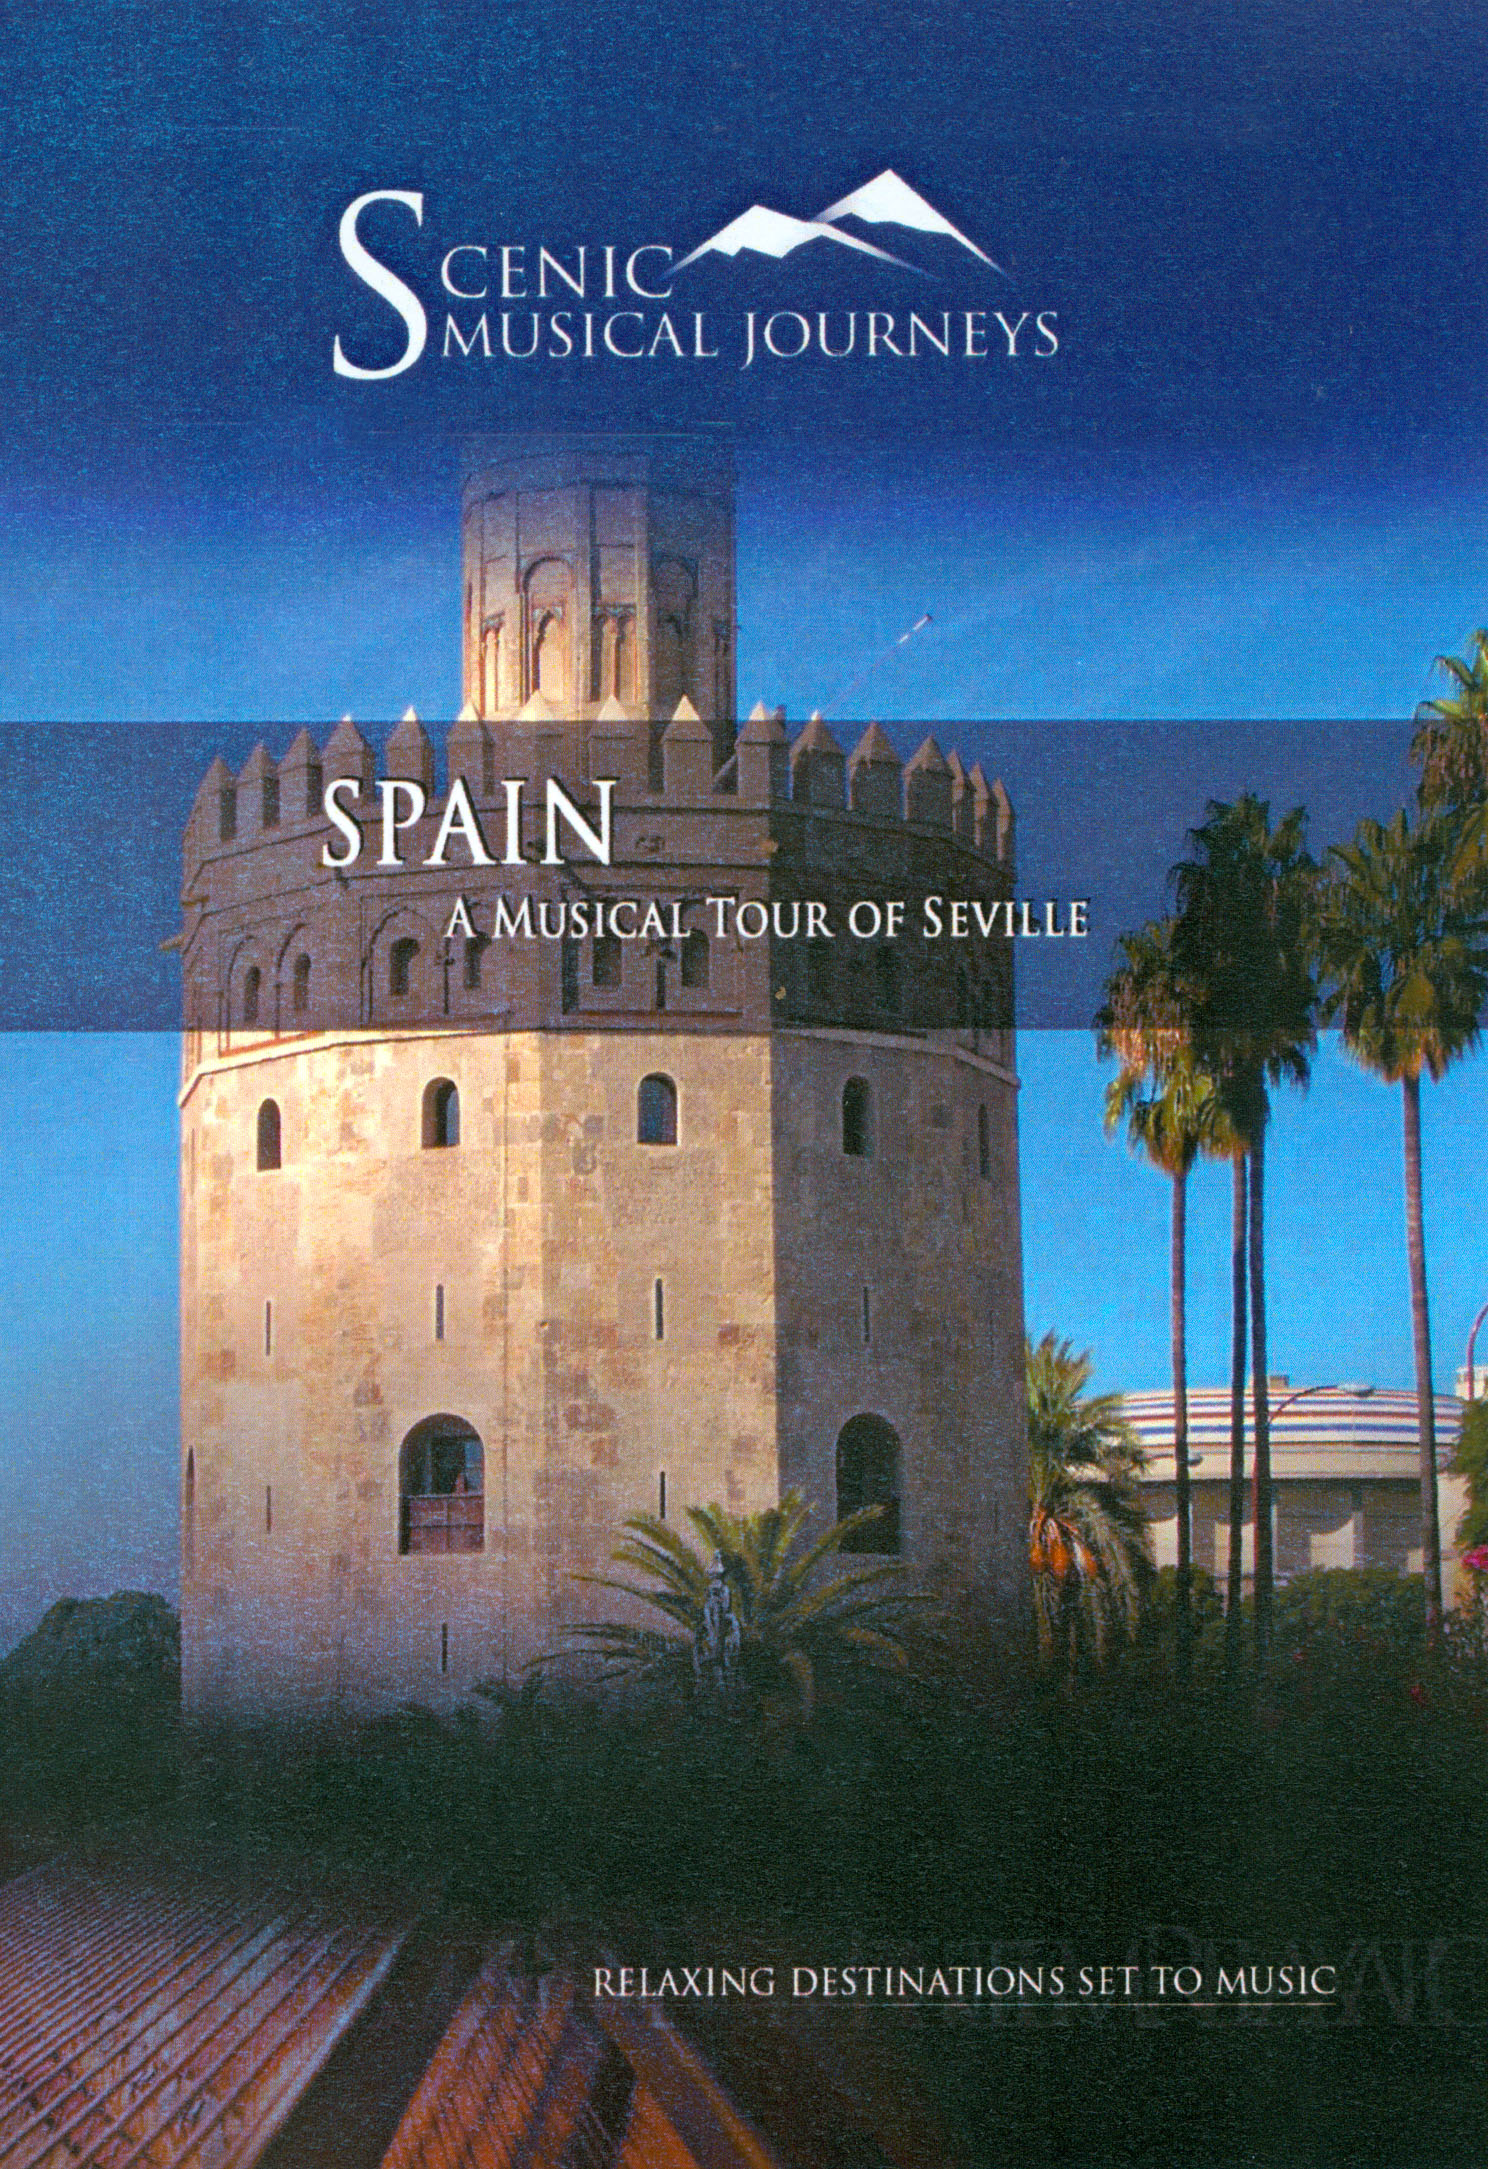 Scenic Musical Journeys: Spain - A Musical Tour of Seville